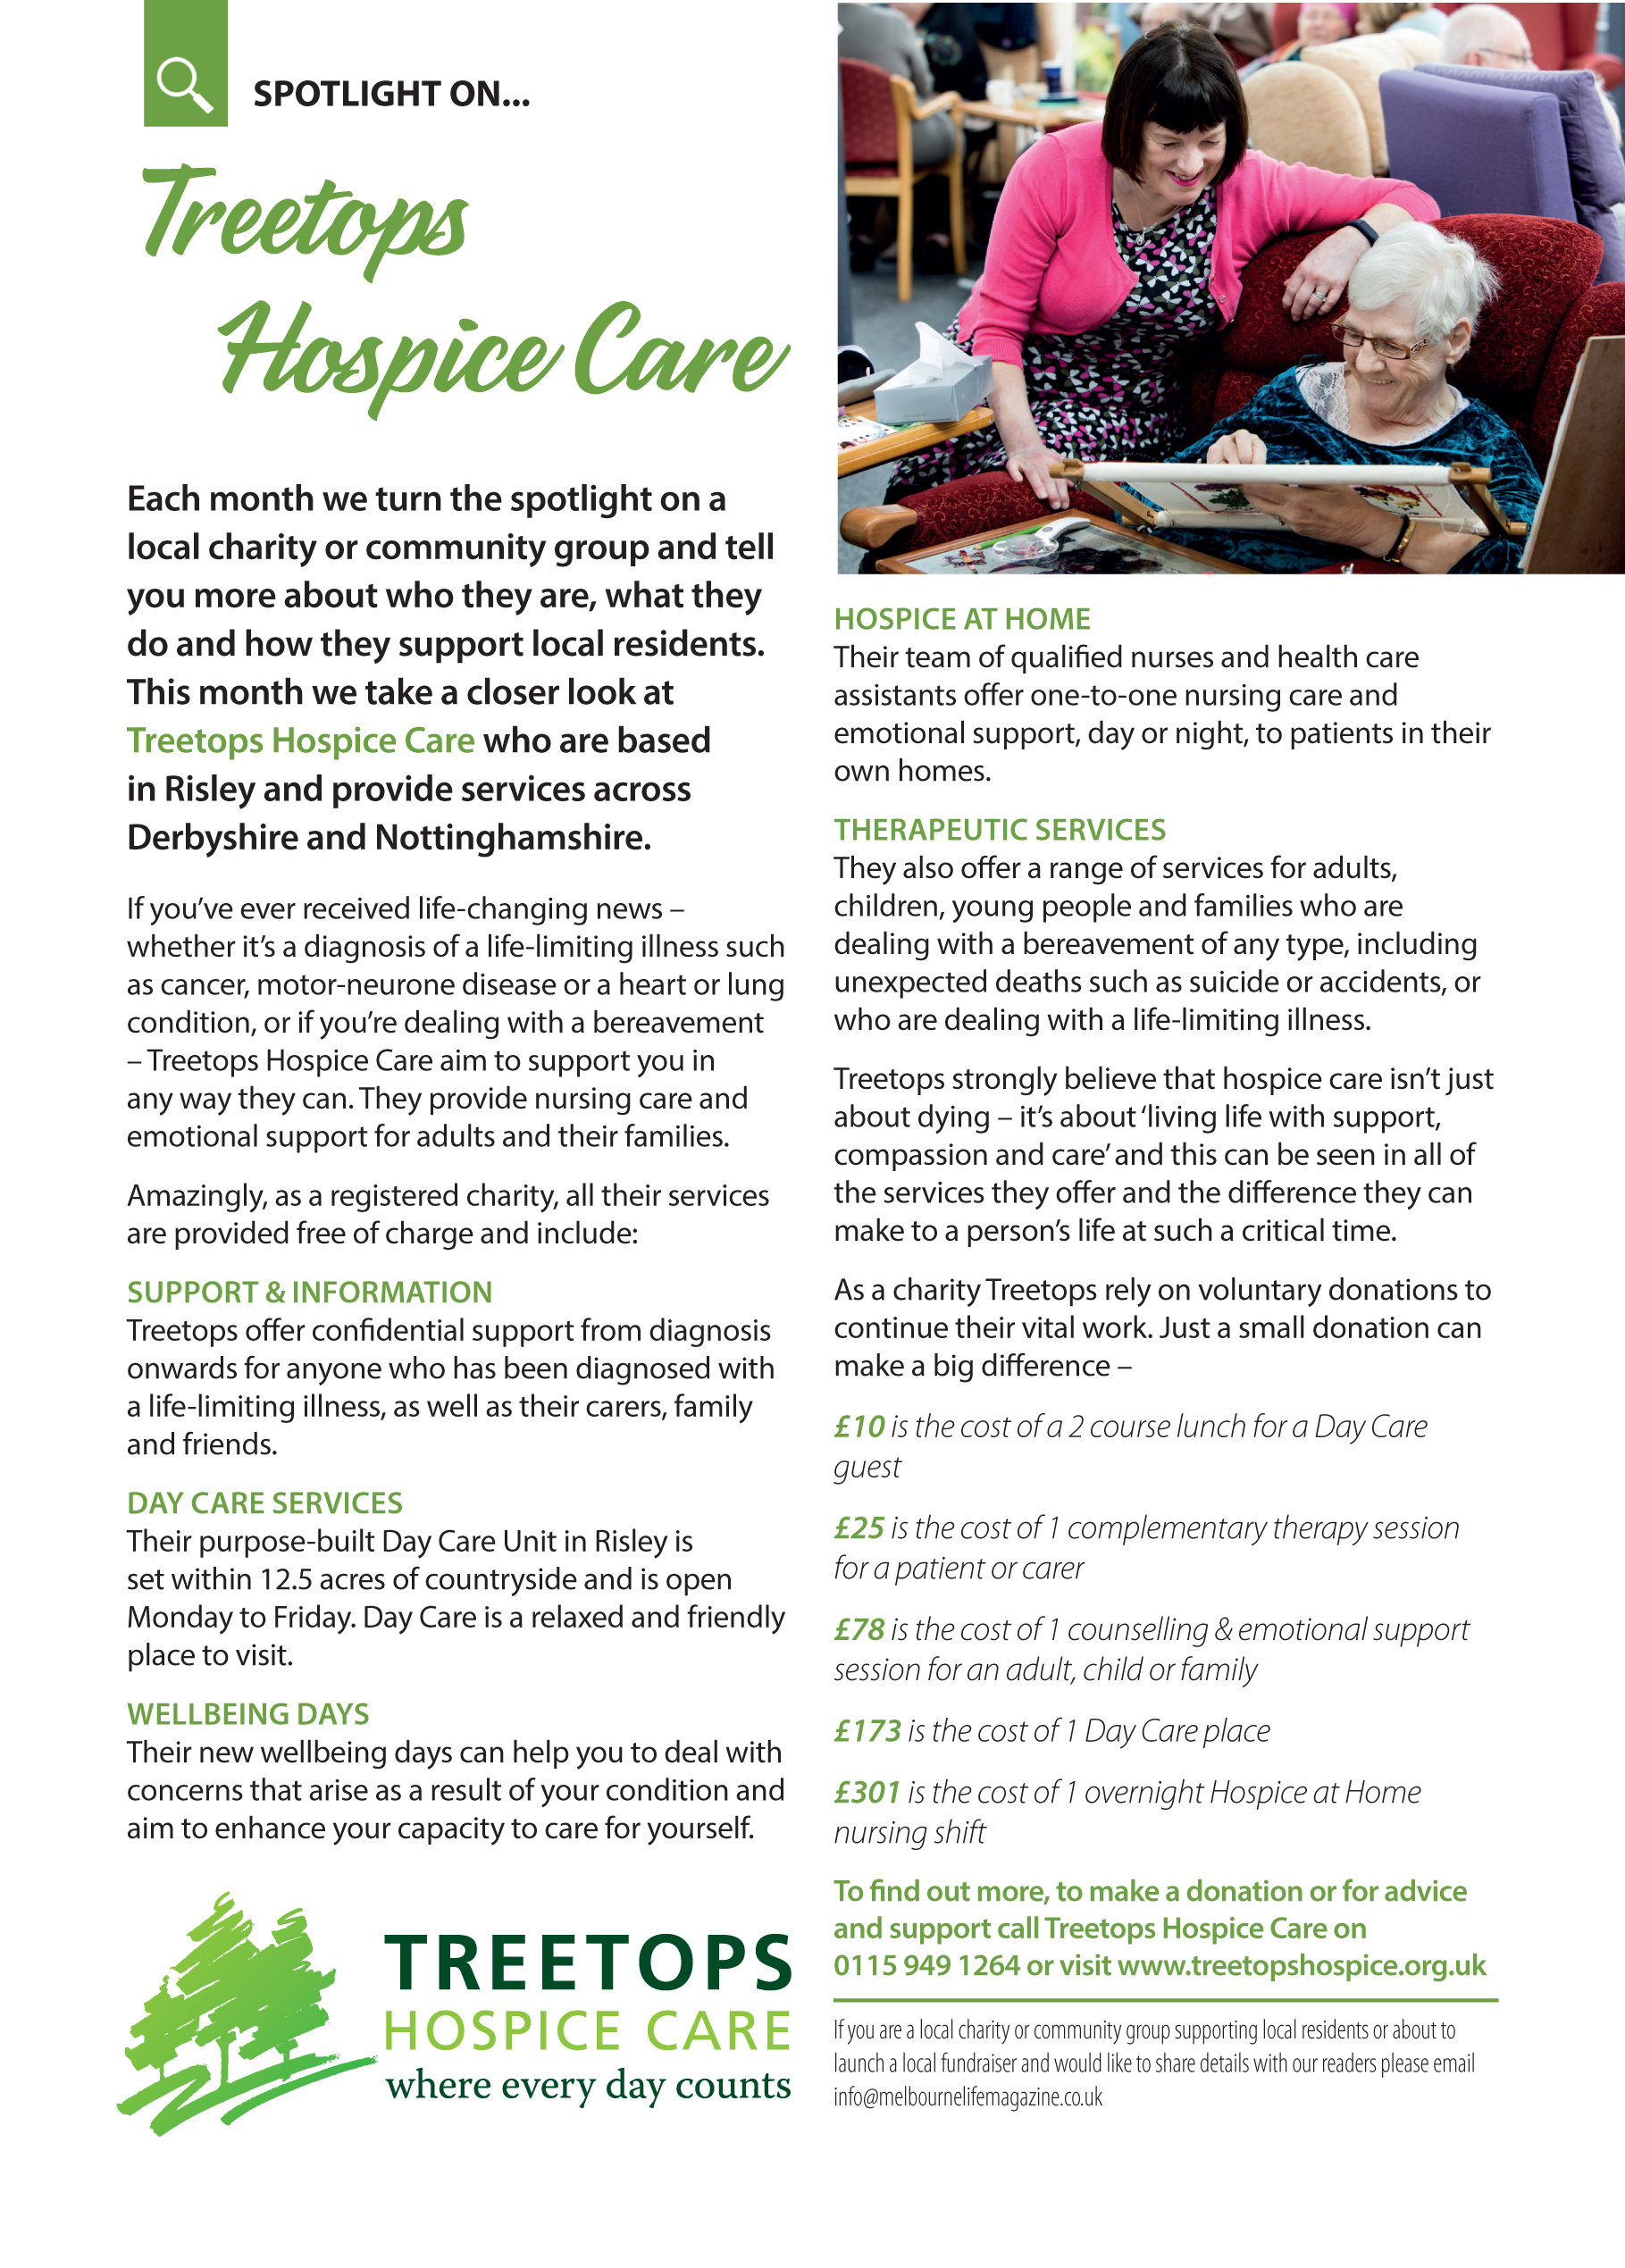 Our spotlight charity this month is Treetops Hospice Care